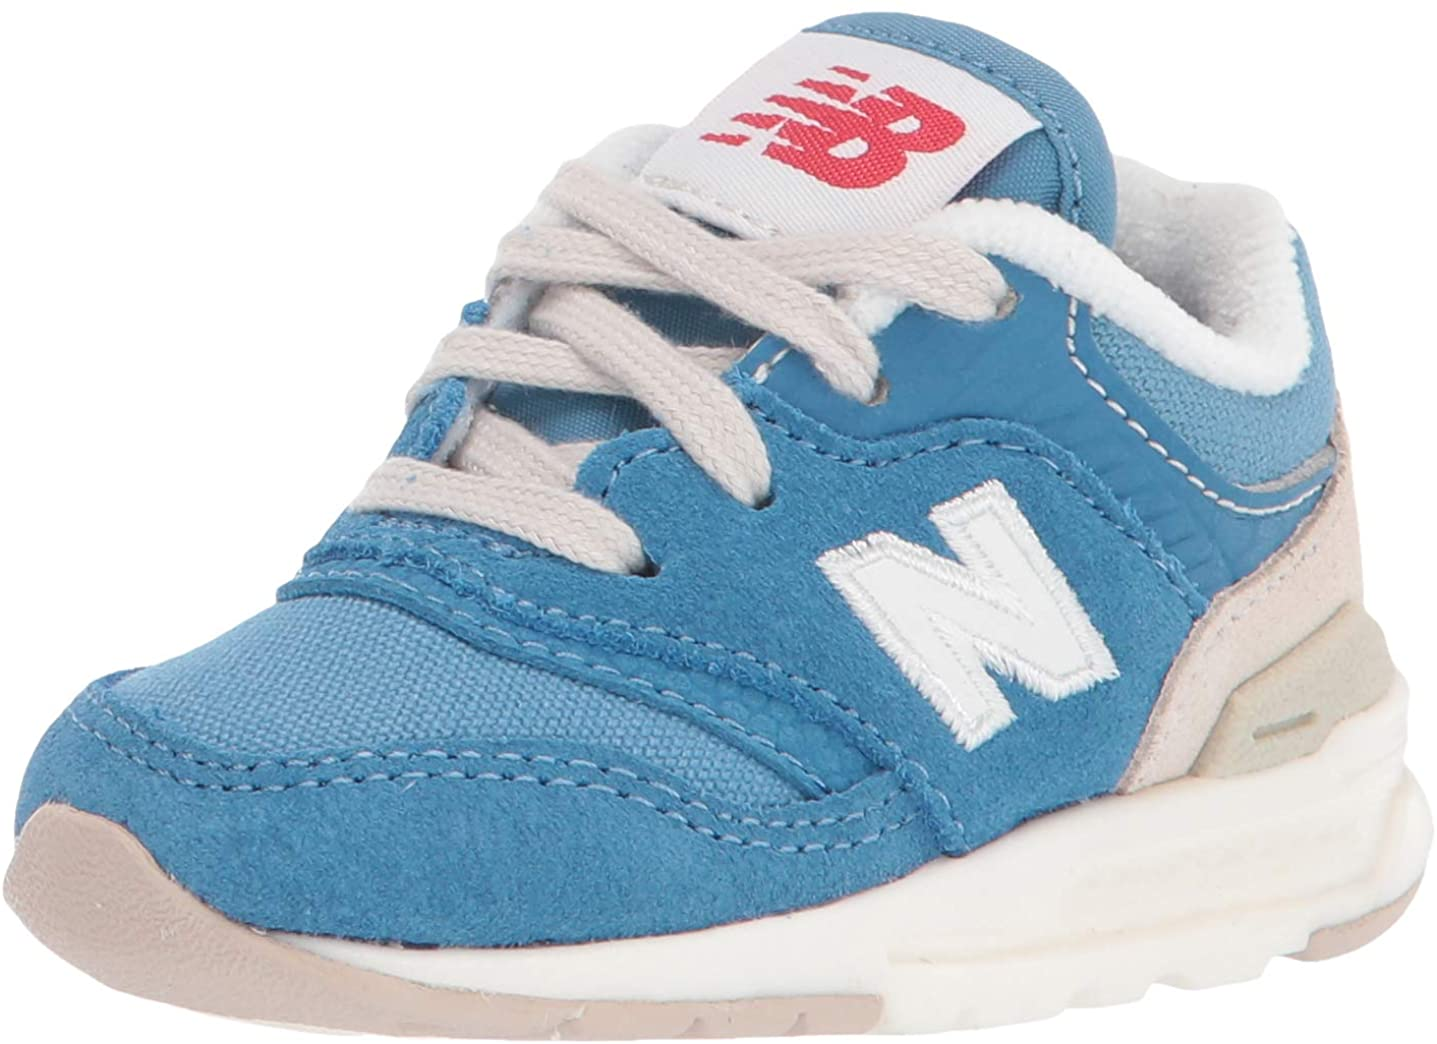 New Balance Kids' 997H V1 Lace-up Sneaker Some reservation Deluxe